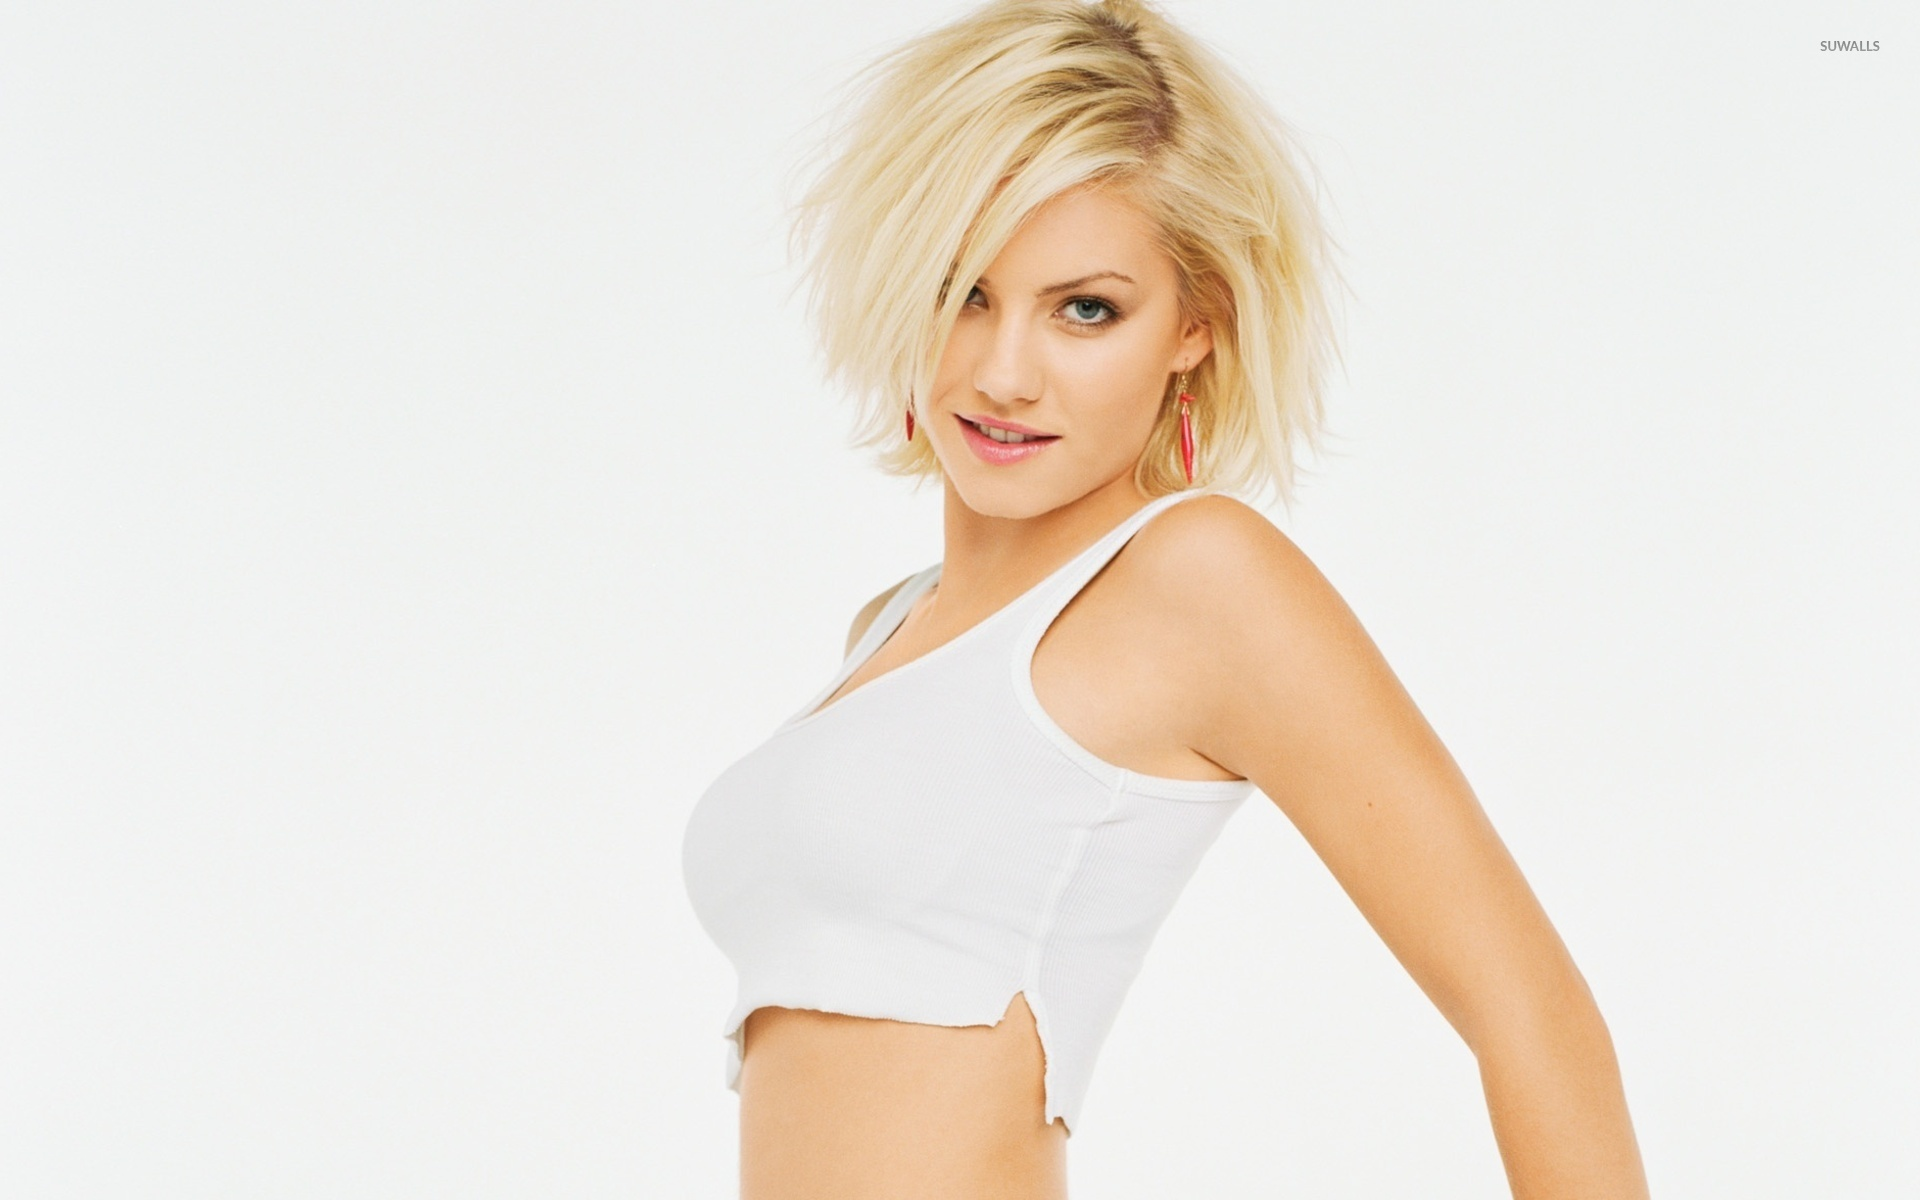 Elisha Cuthbert 12 Wallpaper Celebrity Wallpapers 4264